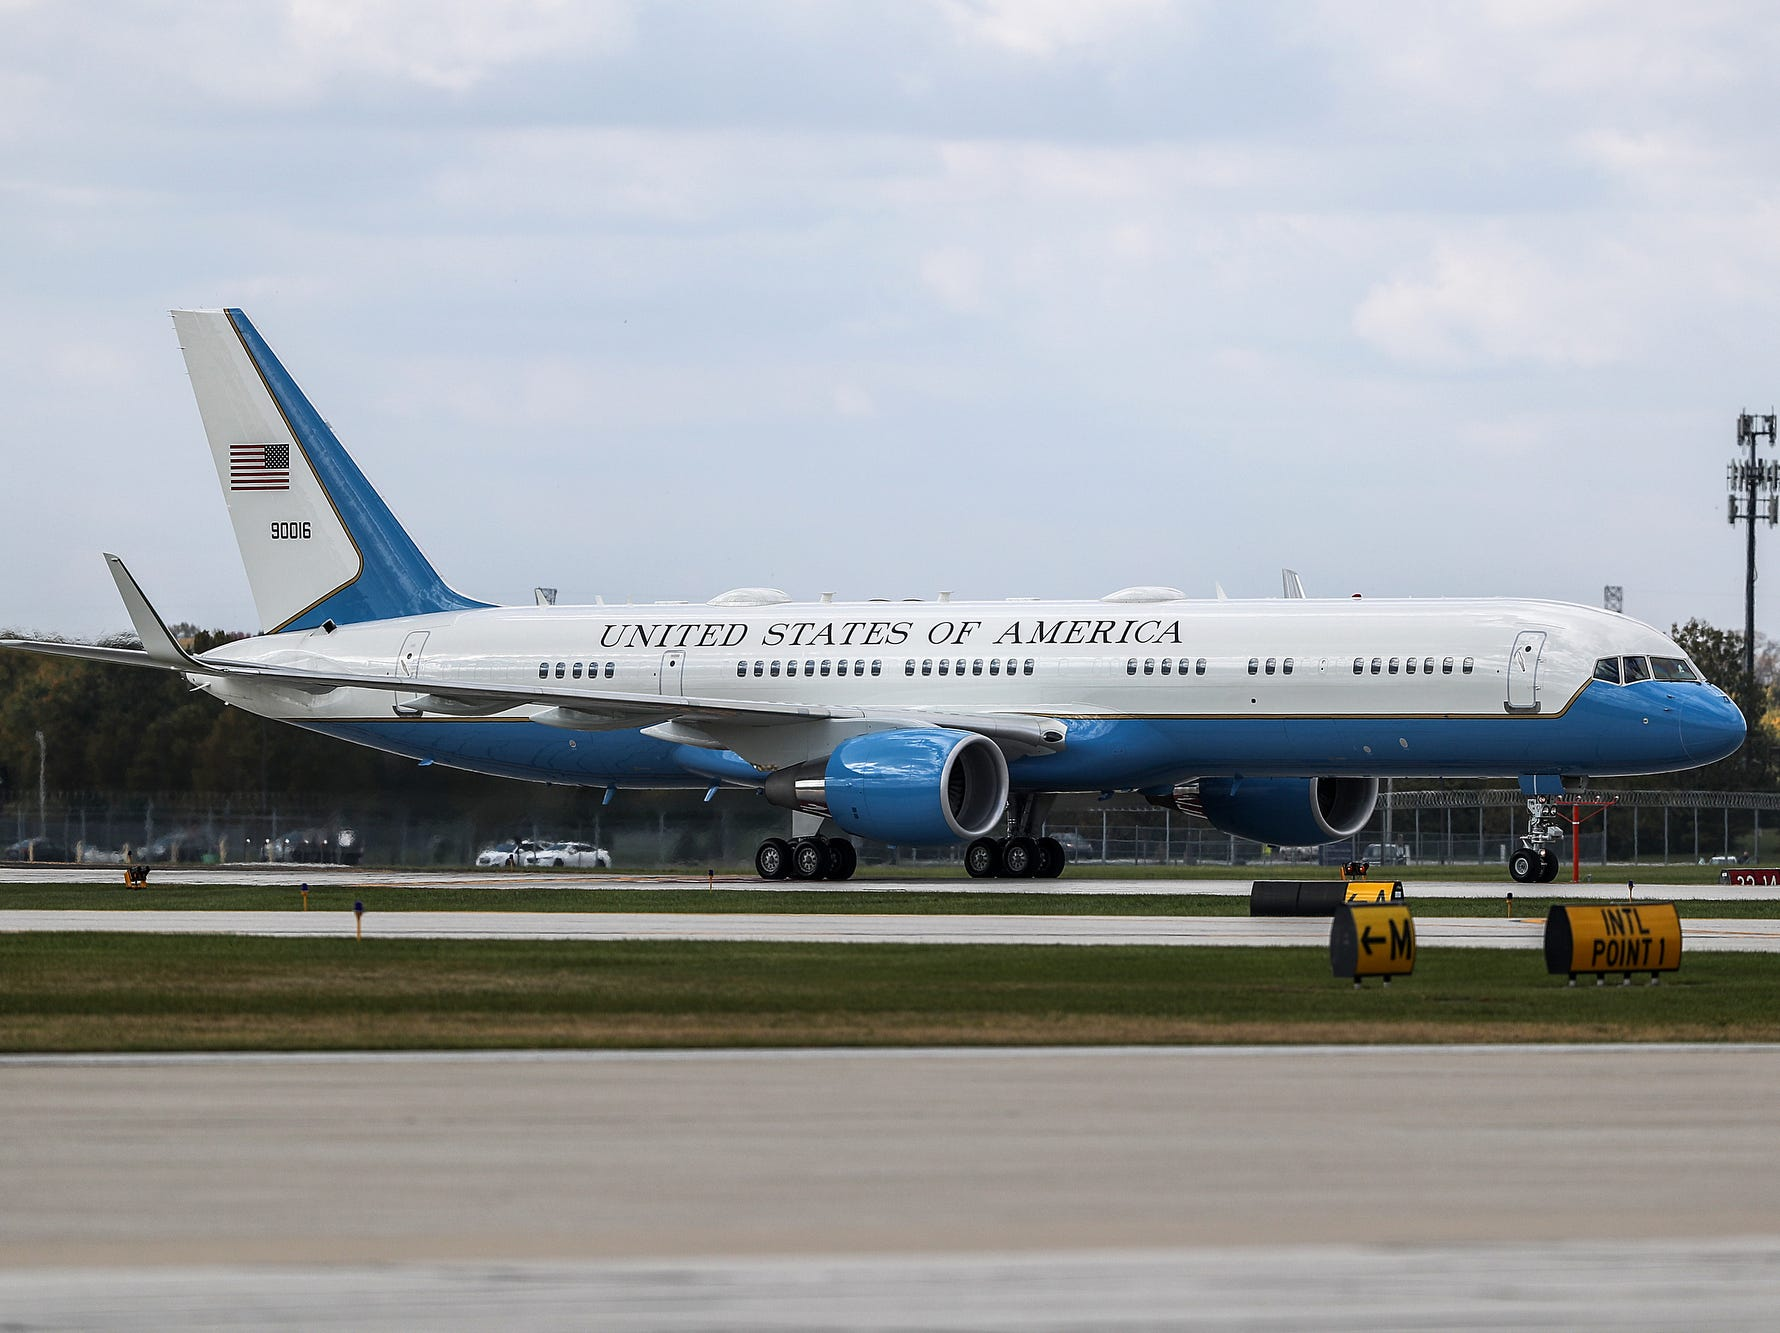 Air Force One arrives at Indianapolis International Airport, where Donald Trump arrived to speak at the annual Future Farmers of America Convention and Expo at Banker's Life Fieldhouse, Saturday, Oct. 27, 2018.